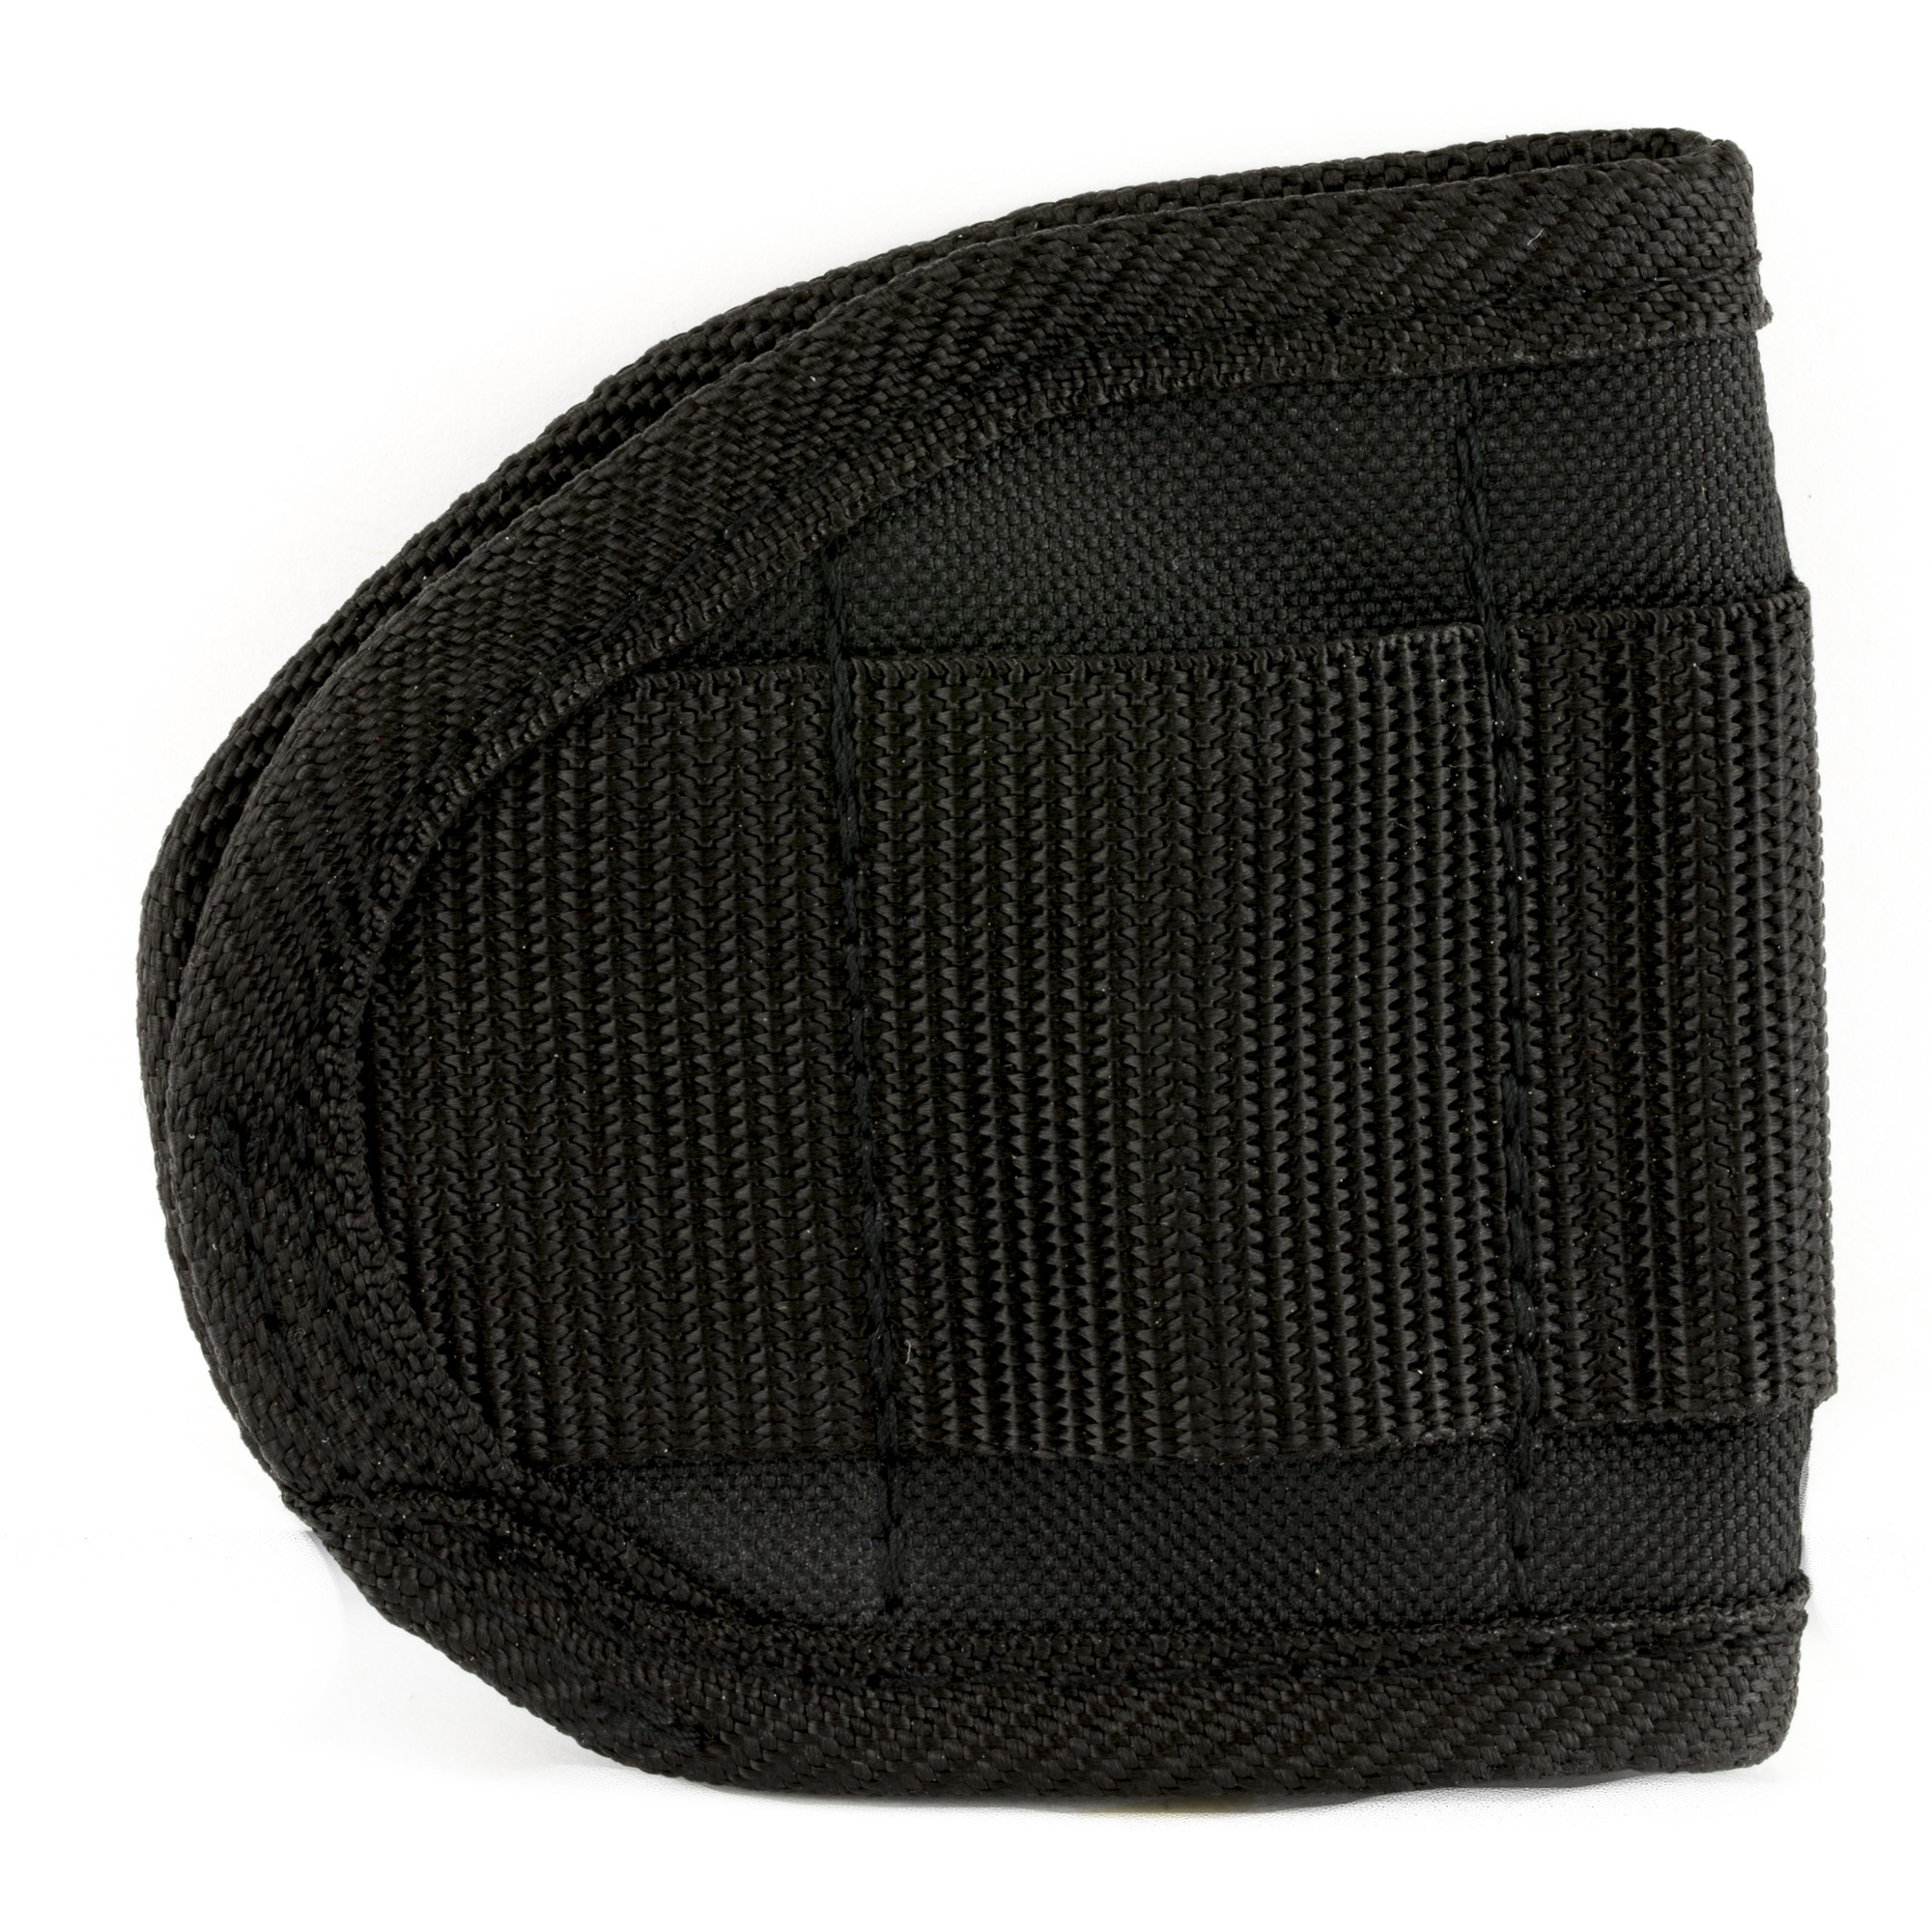 """If you own multiple handguns that regularly rotate in and out of your carry regimen"""" you know how difficult it can be to find holsters that are both practical and comfortable. These ambidextrous holsters from Bulldog Cases fit a wide variety of medium frame automatic handguns"""" and easily slide inside the waistband for comfortable carry. Made of ballistic nylon"""" black."""